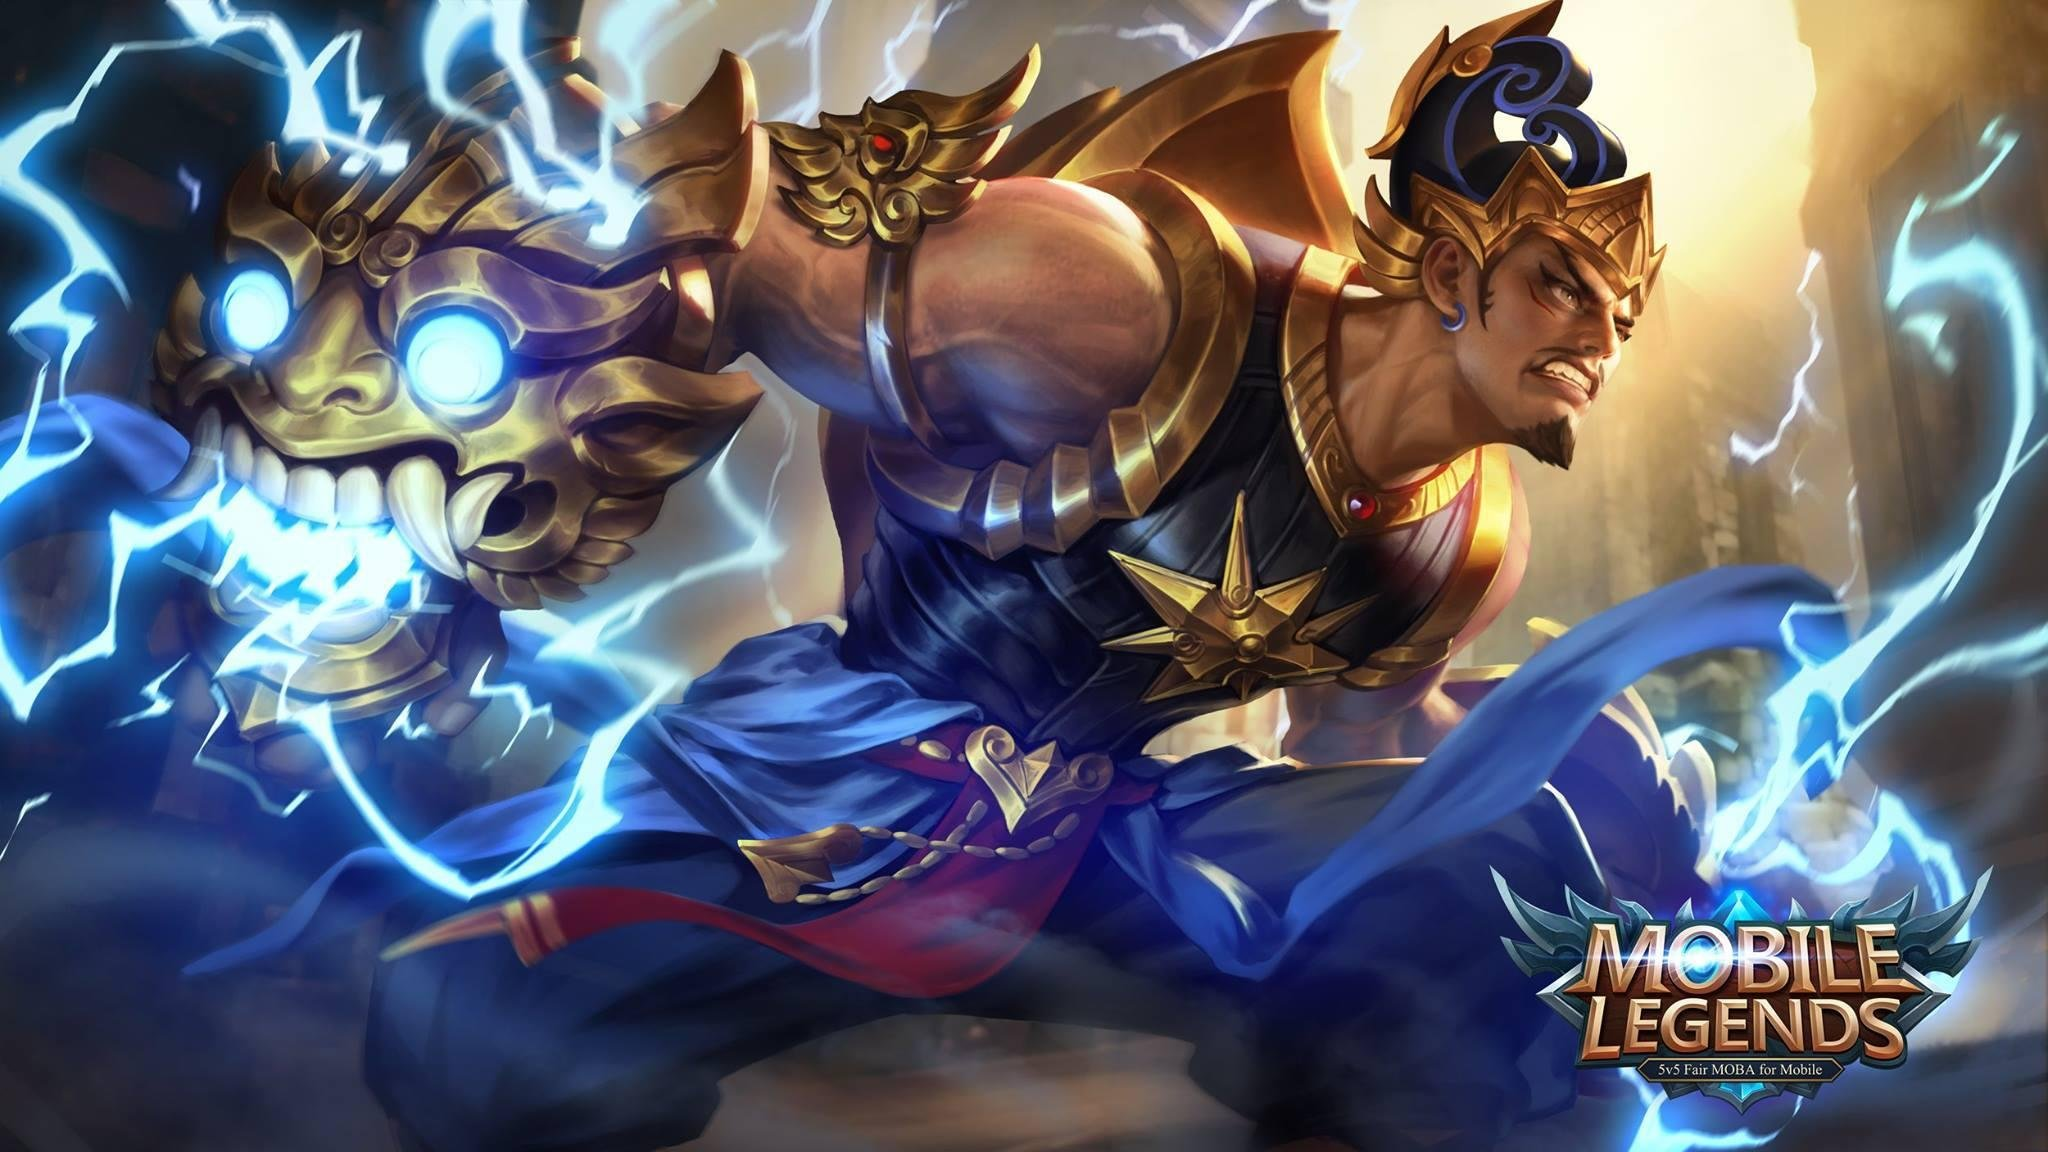 120 Best Mobile Legends Wallpapers Ever Download for Mobile 2048x1152